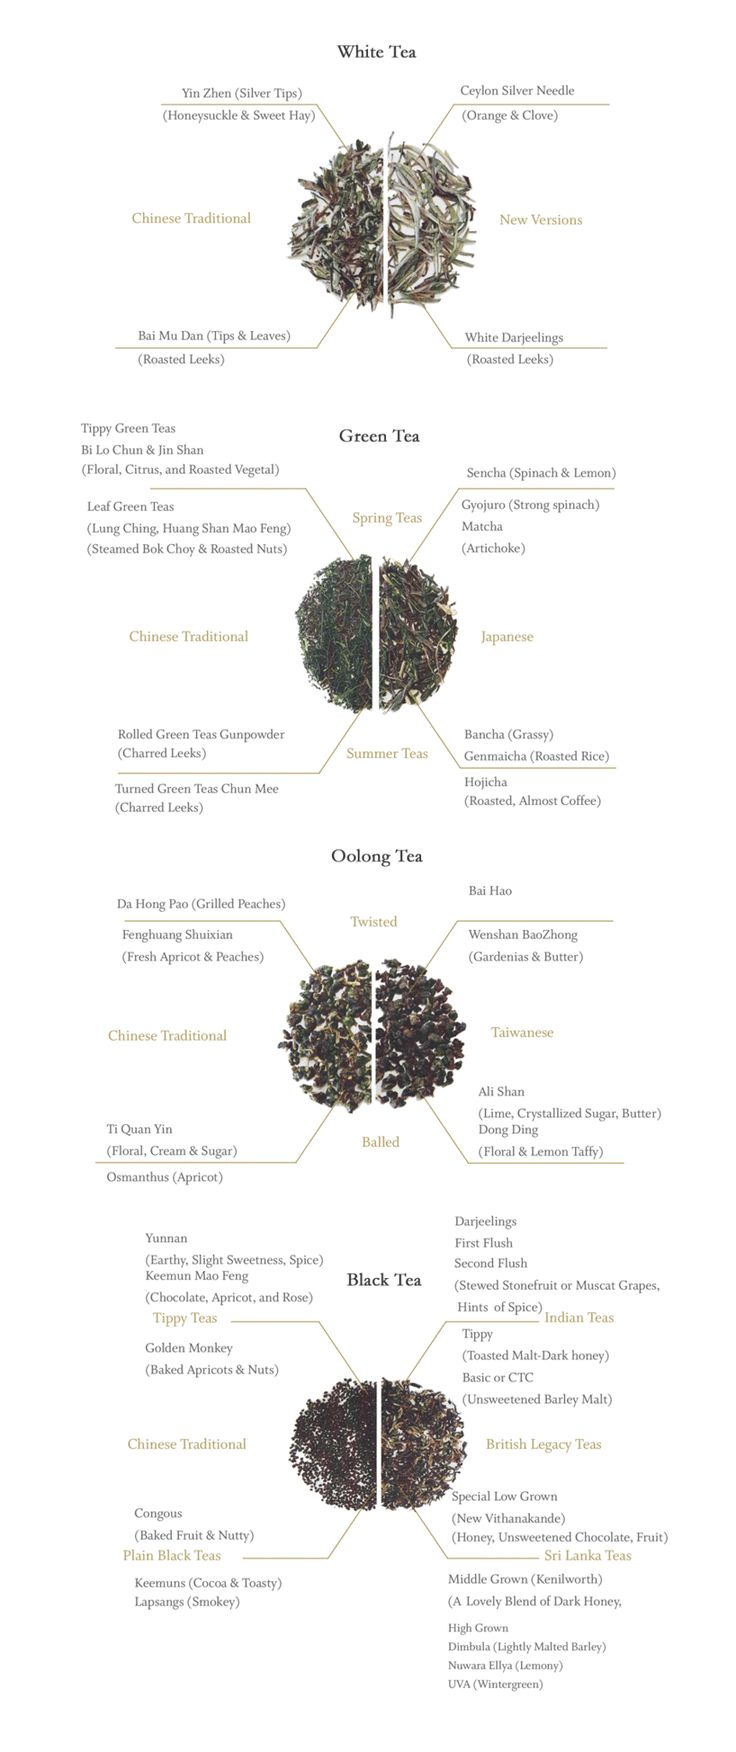 At Harney & Sons, we are not only dedicated to delivering our tea drinkers quality teas and tea products, but also passing on our passion for tea.